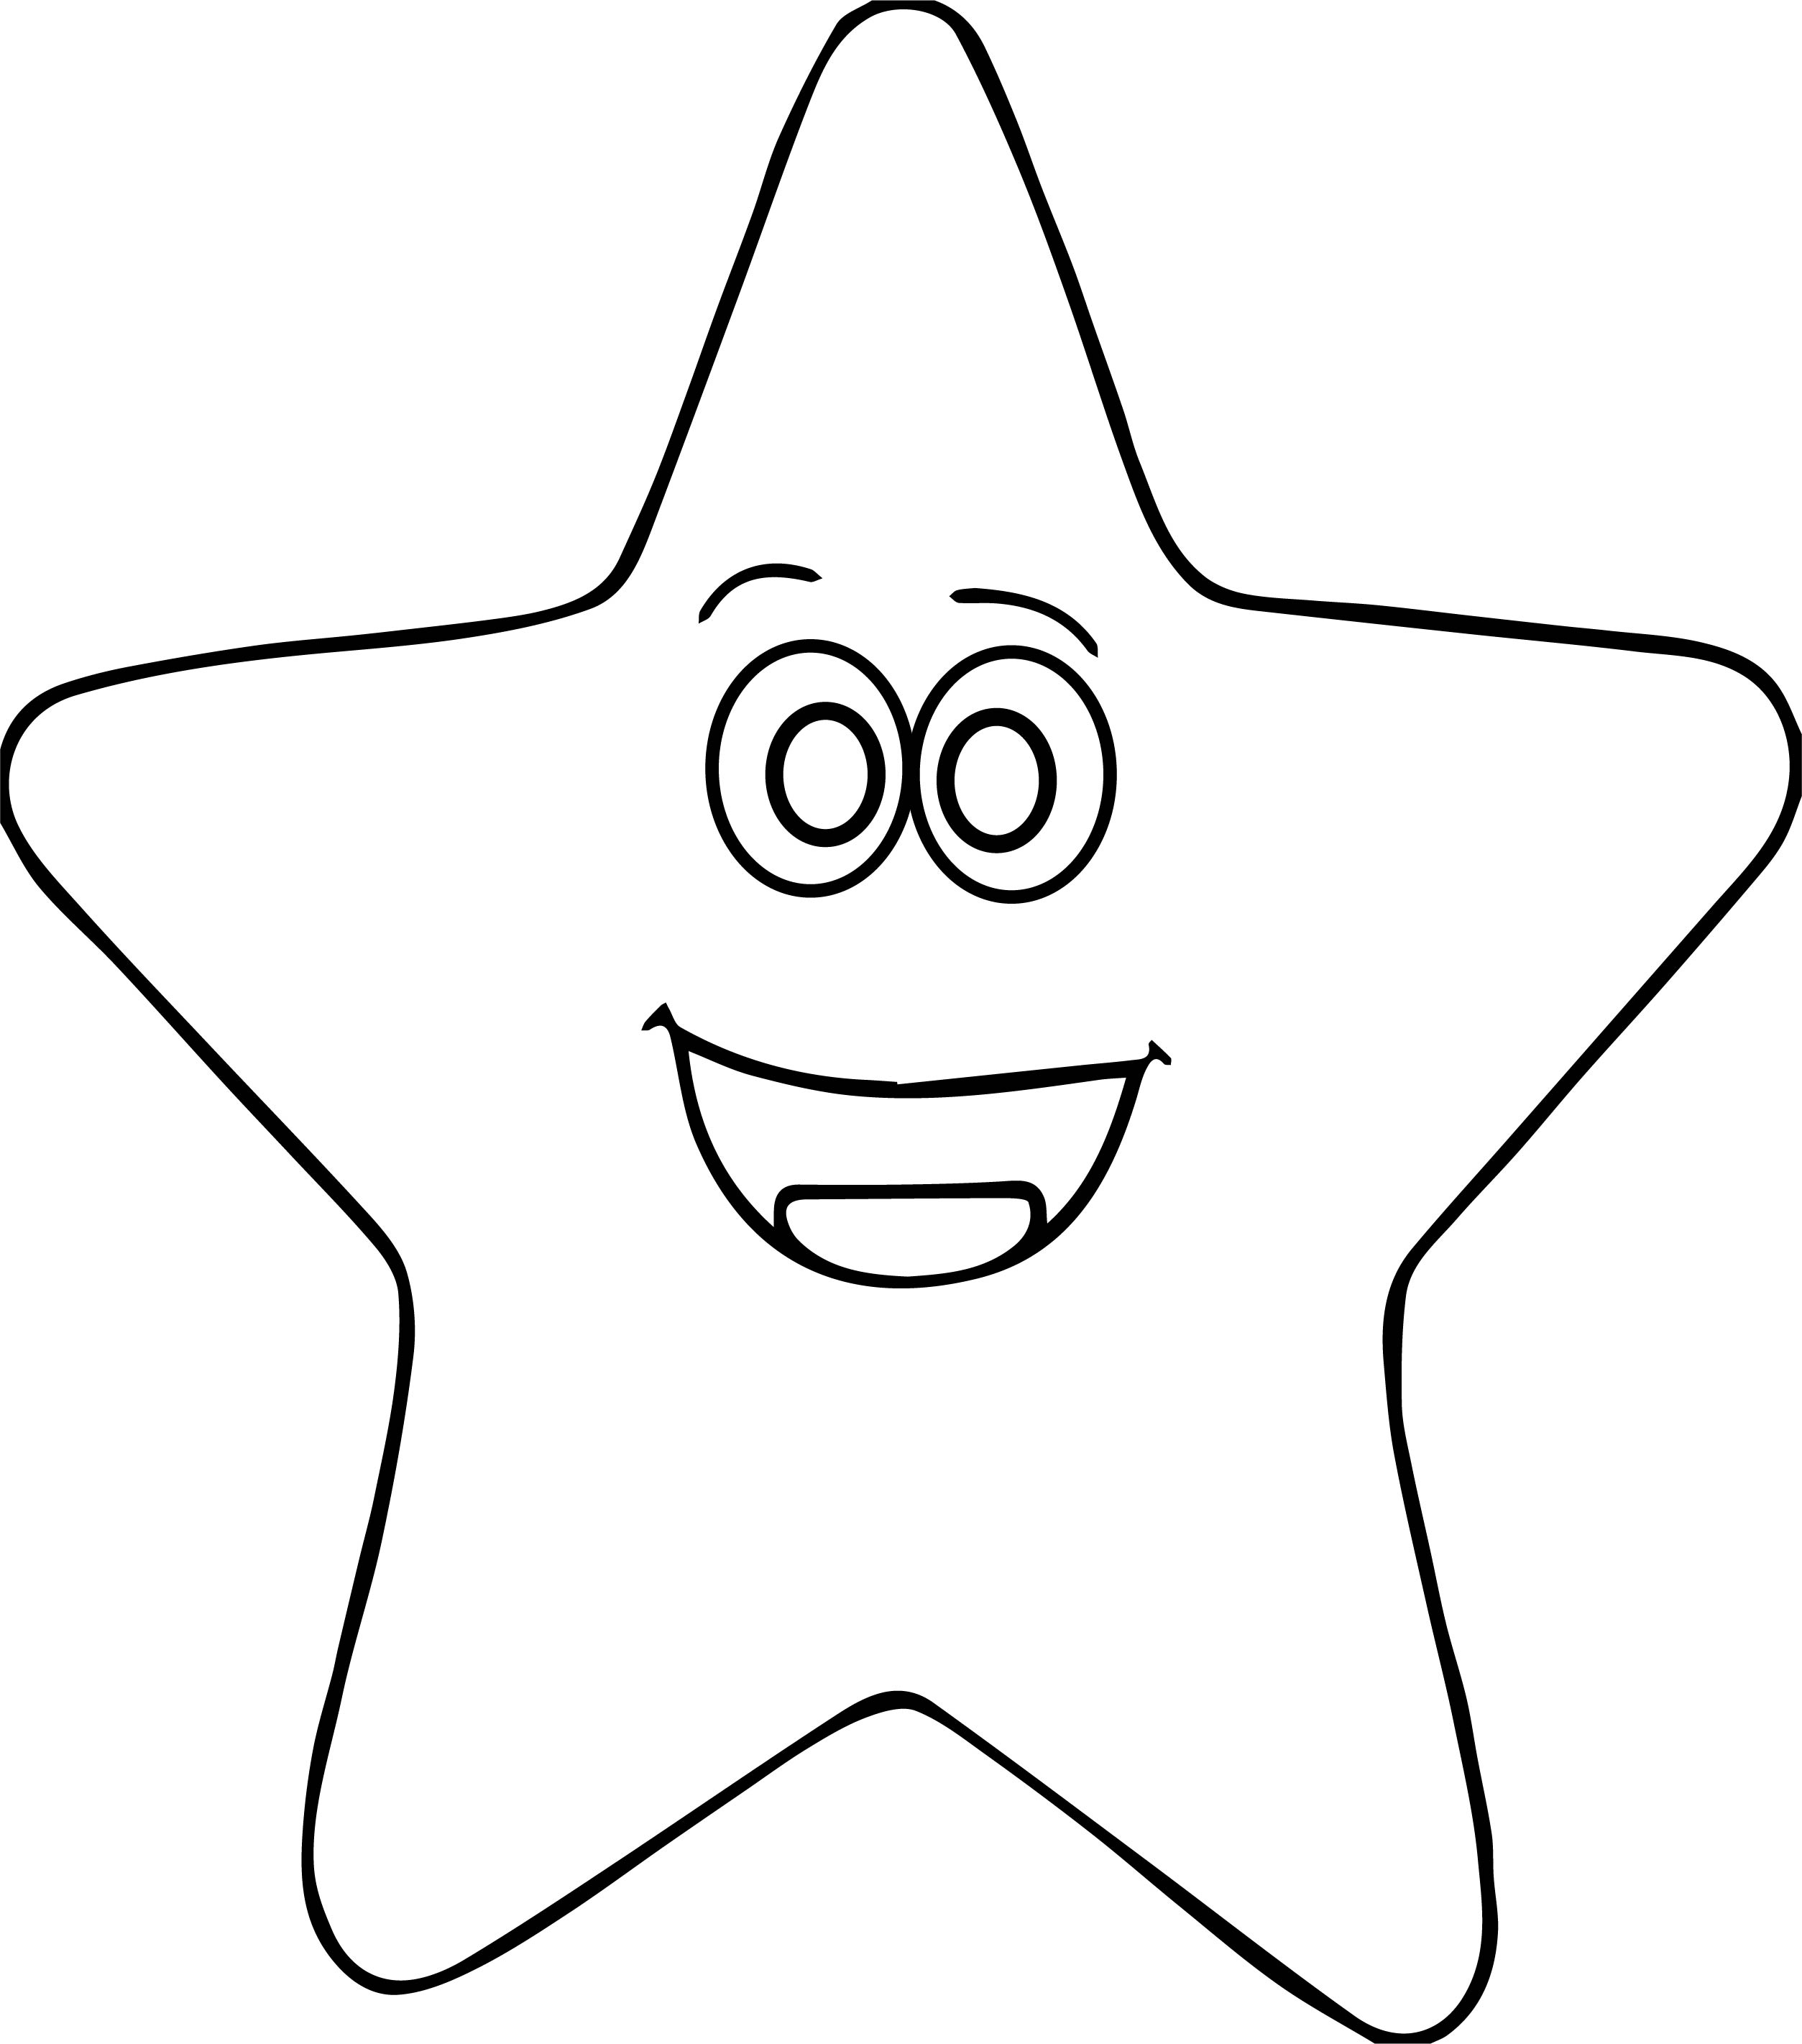 Happy Star We Coloring Page 34